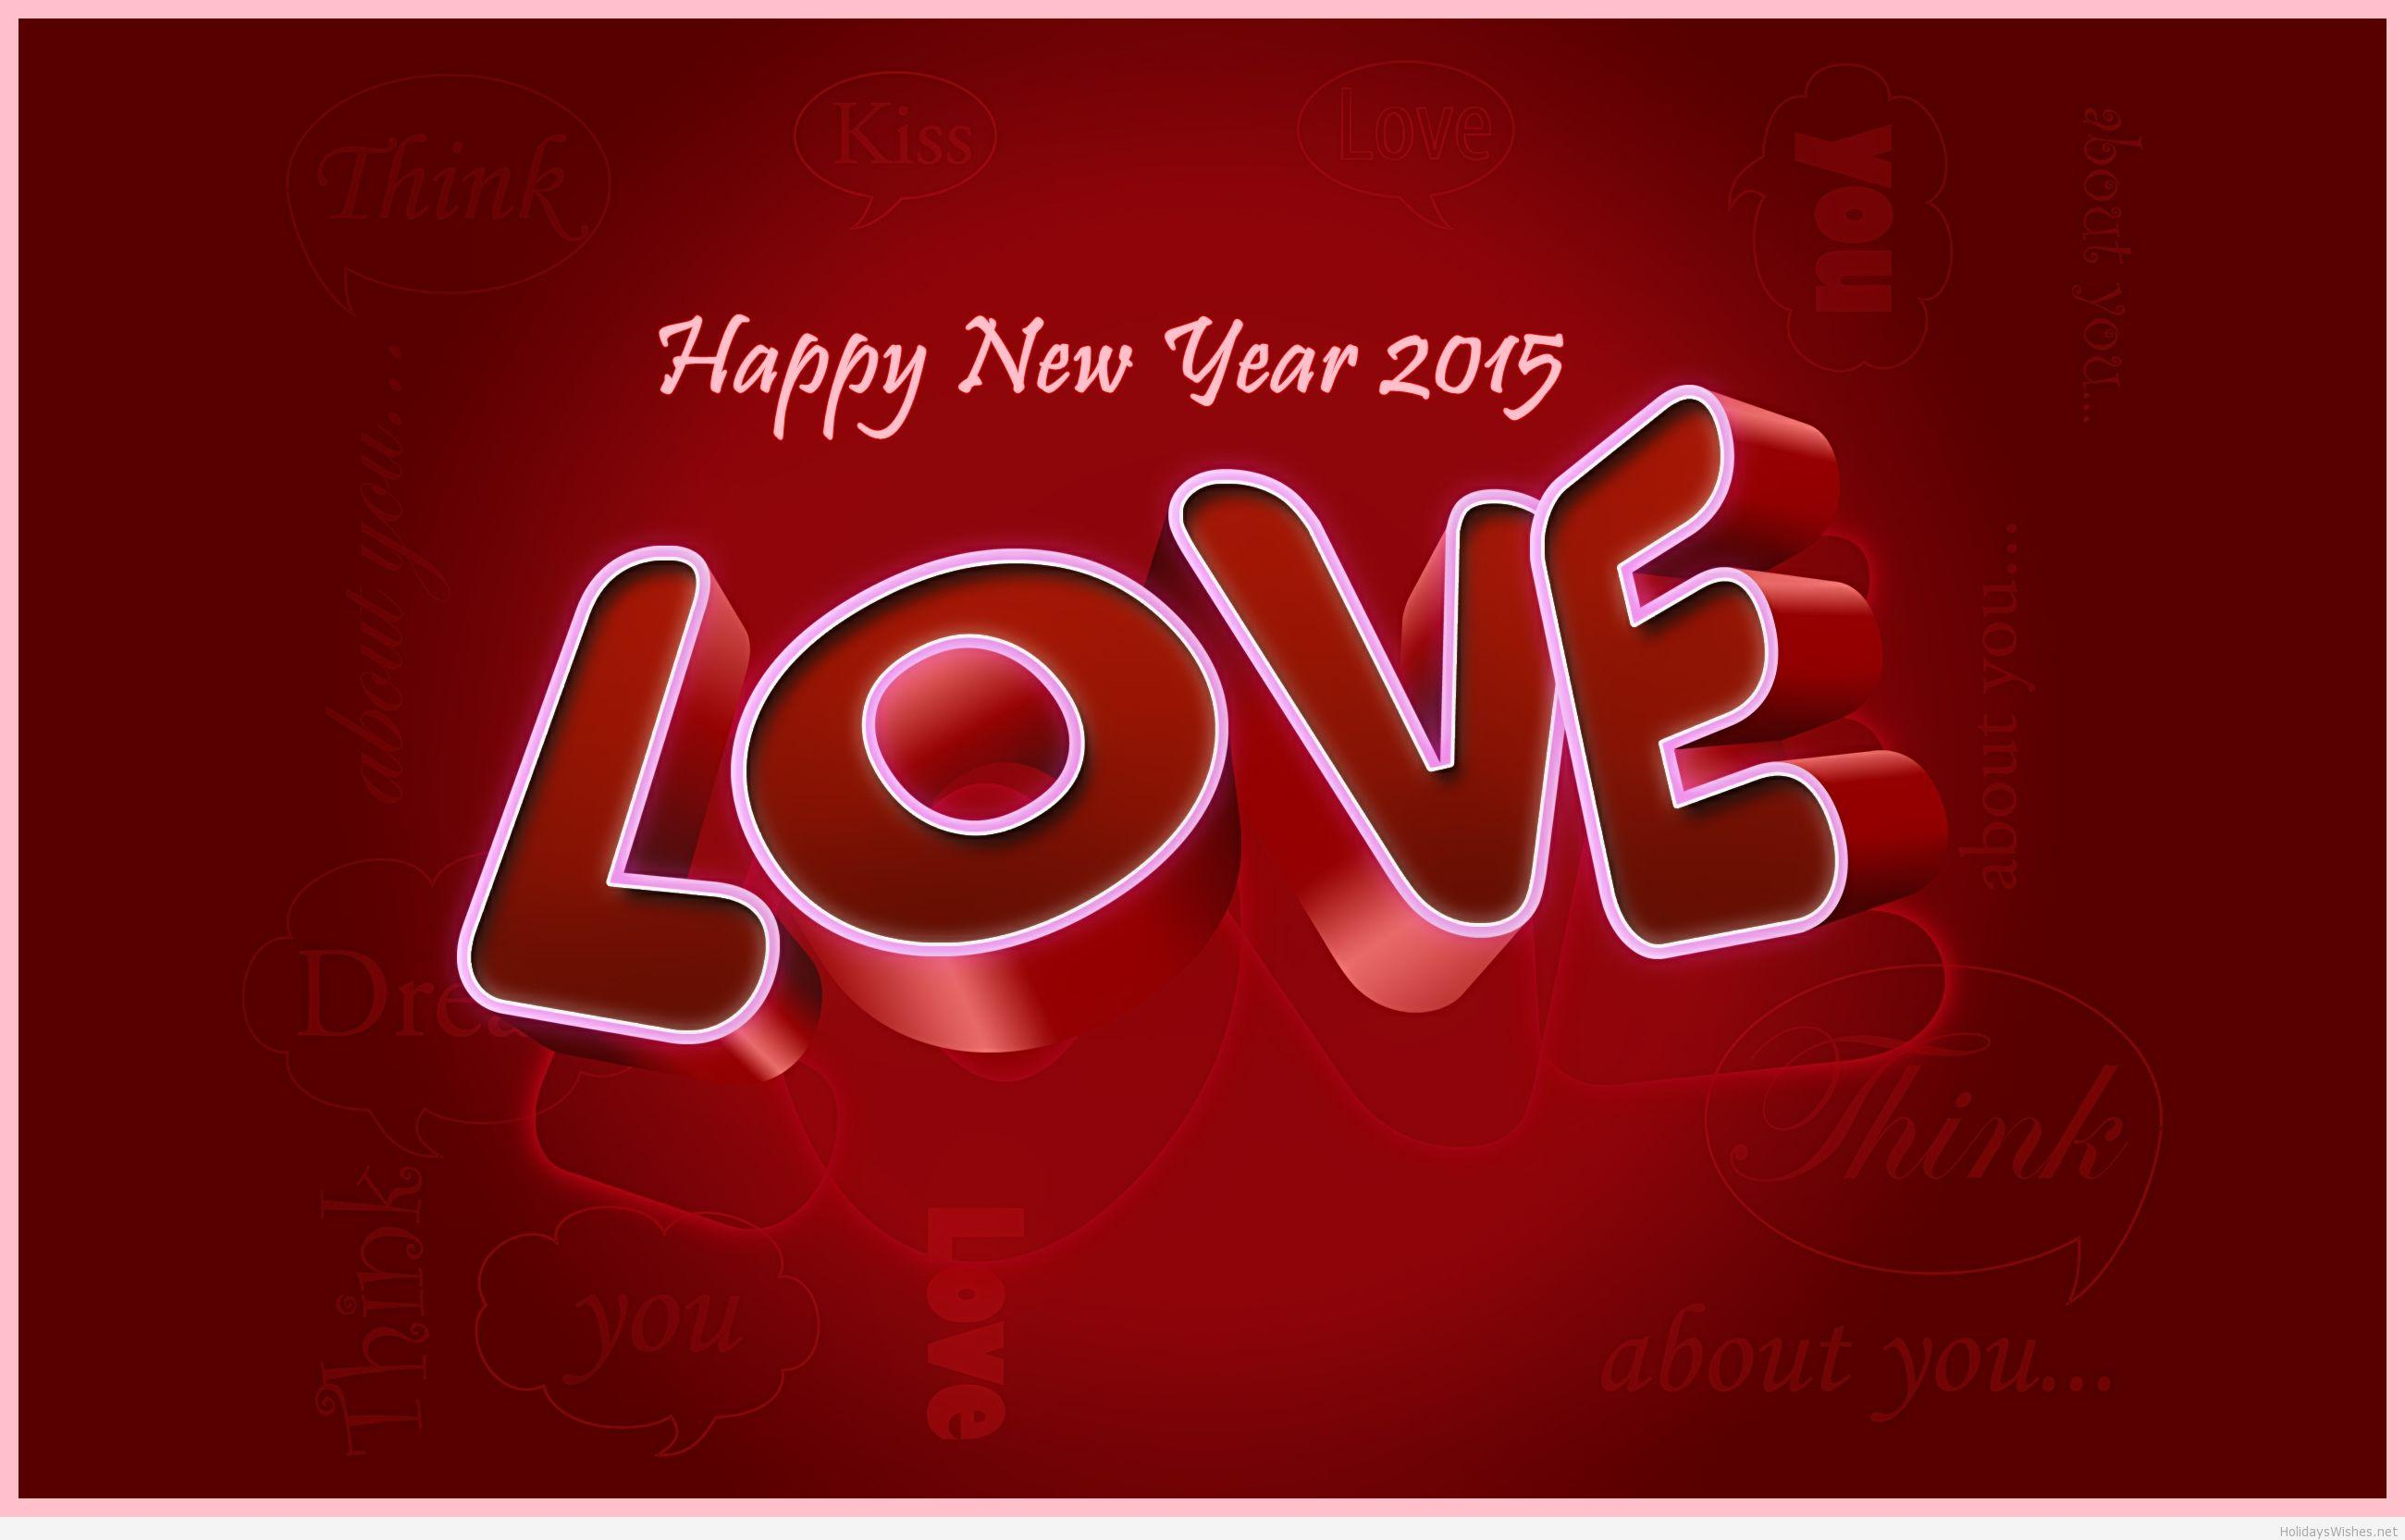 Wallpaper download new year 2015 - Happy New Year 2015 Hd Wallpaper Love 3d Background Wallpaperloves